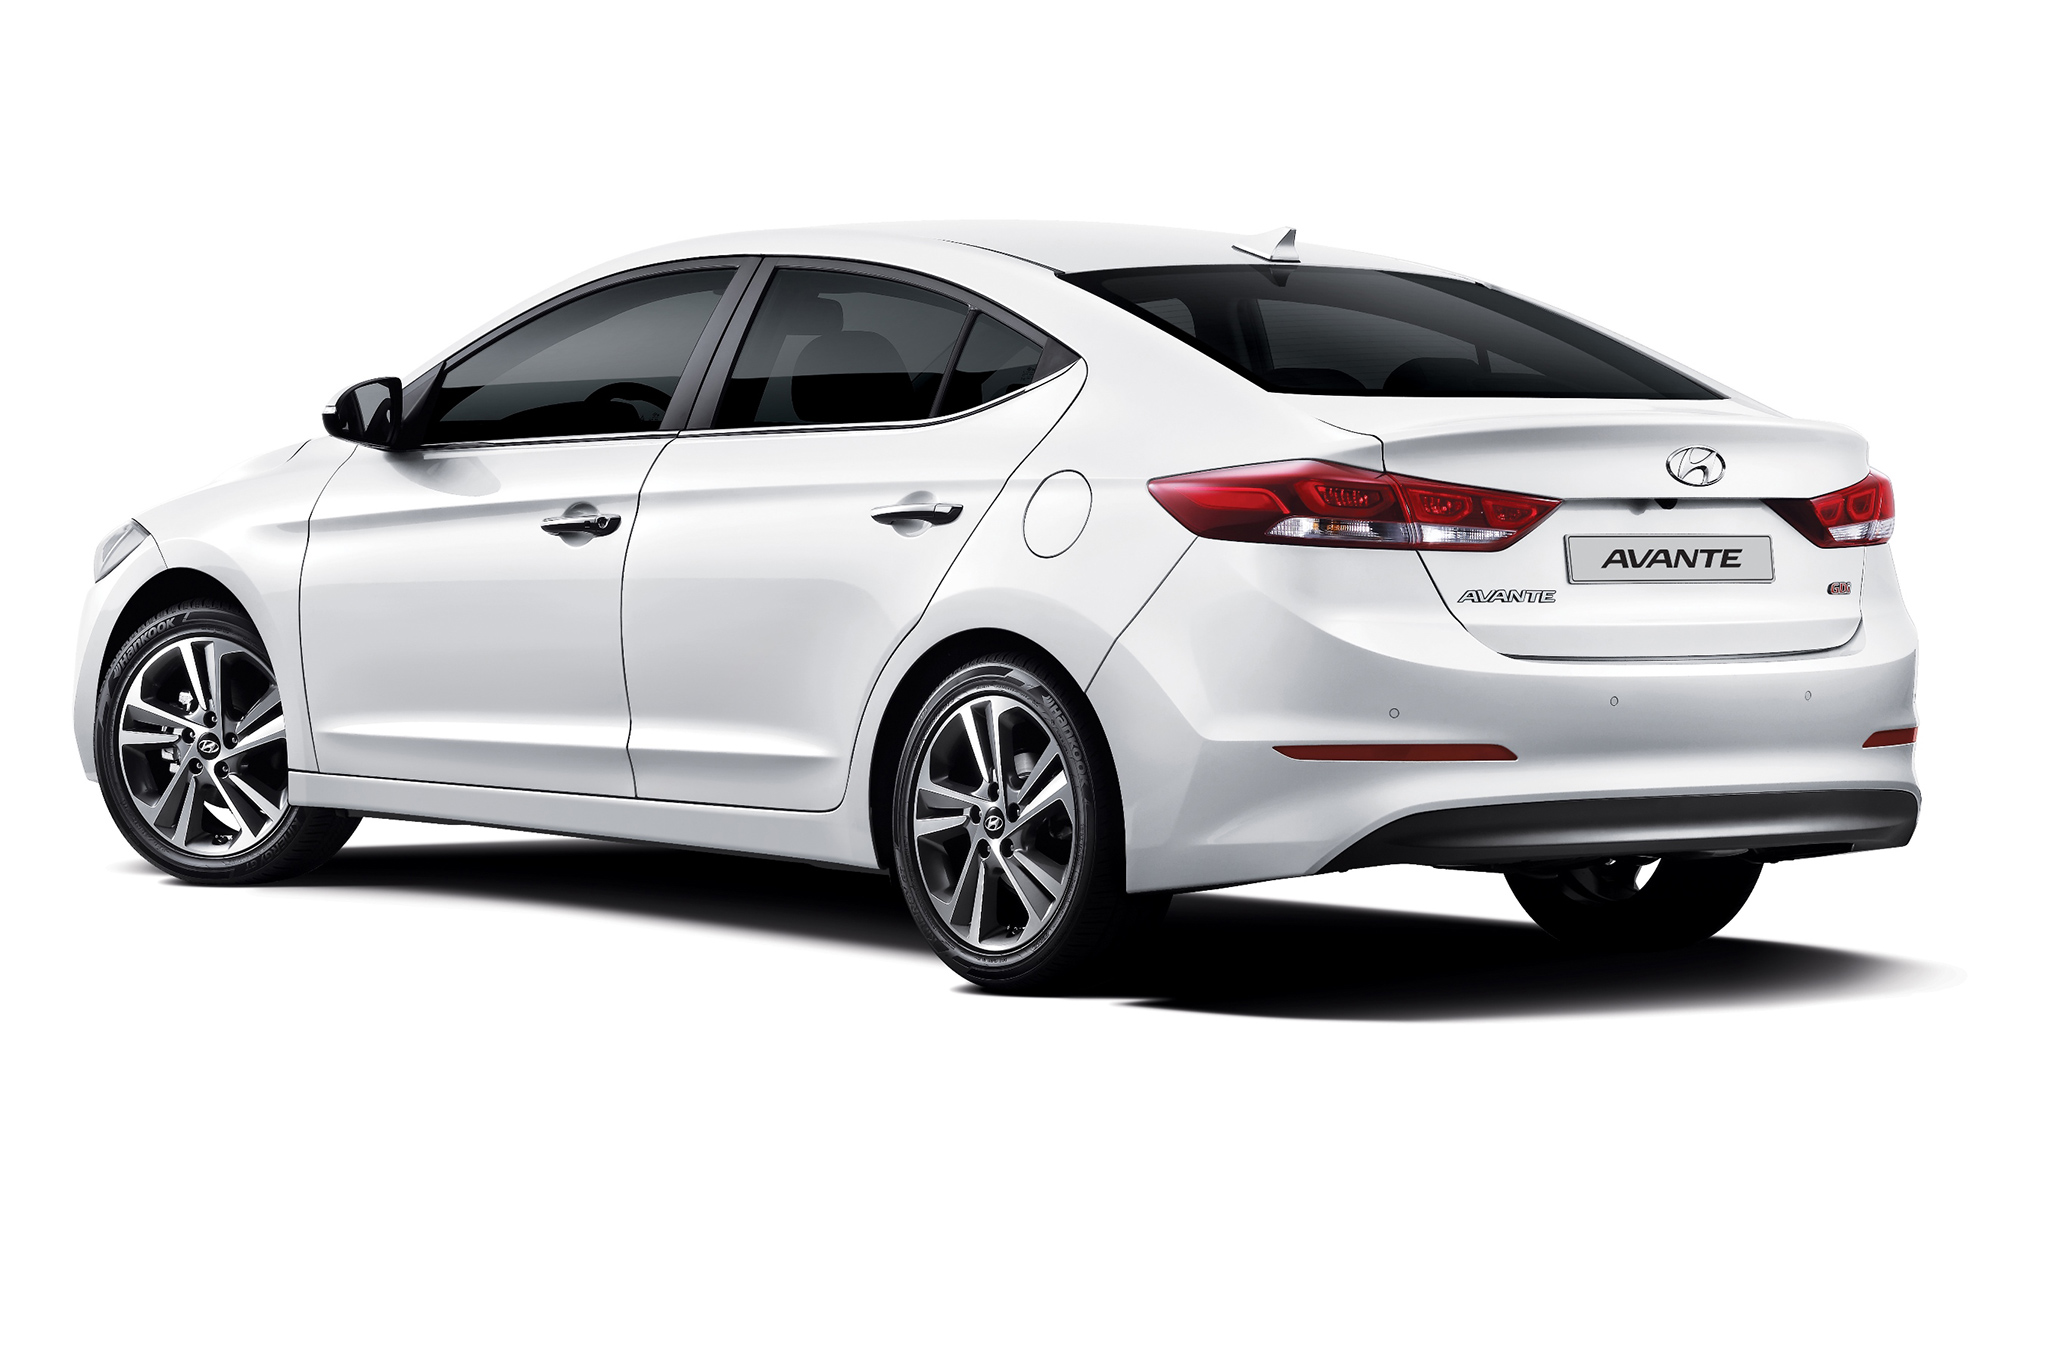 2017 Hyundai Elantra Revealed In Korea With More Upscale